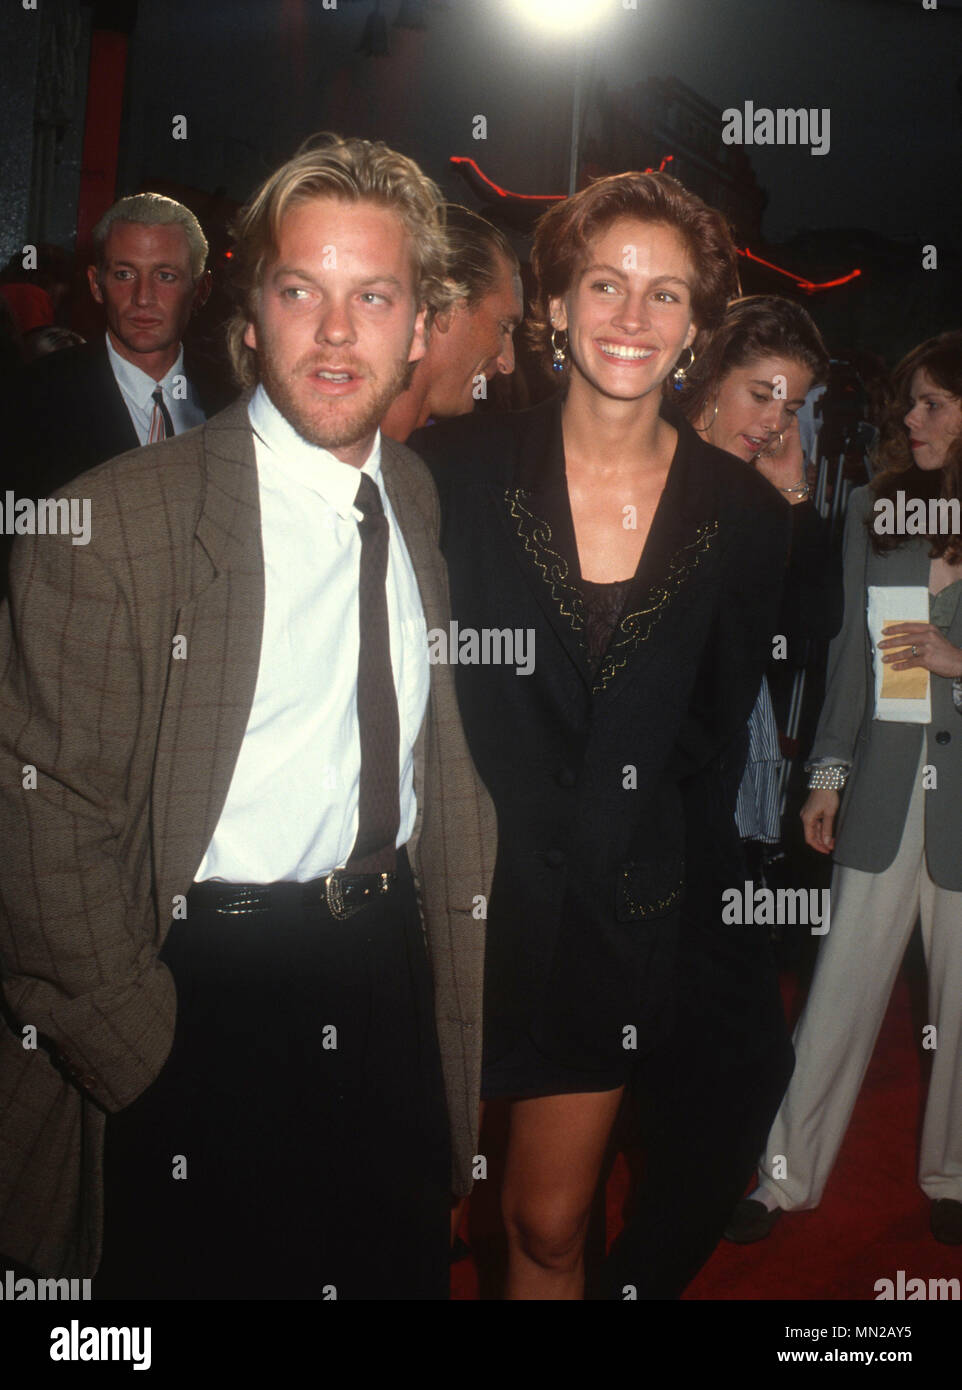 Pretty Woman 1990 High Resolution Stock Photography And Images Alamy